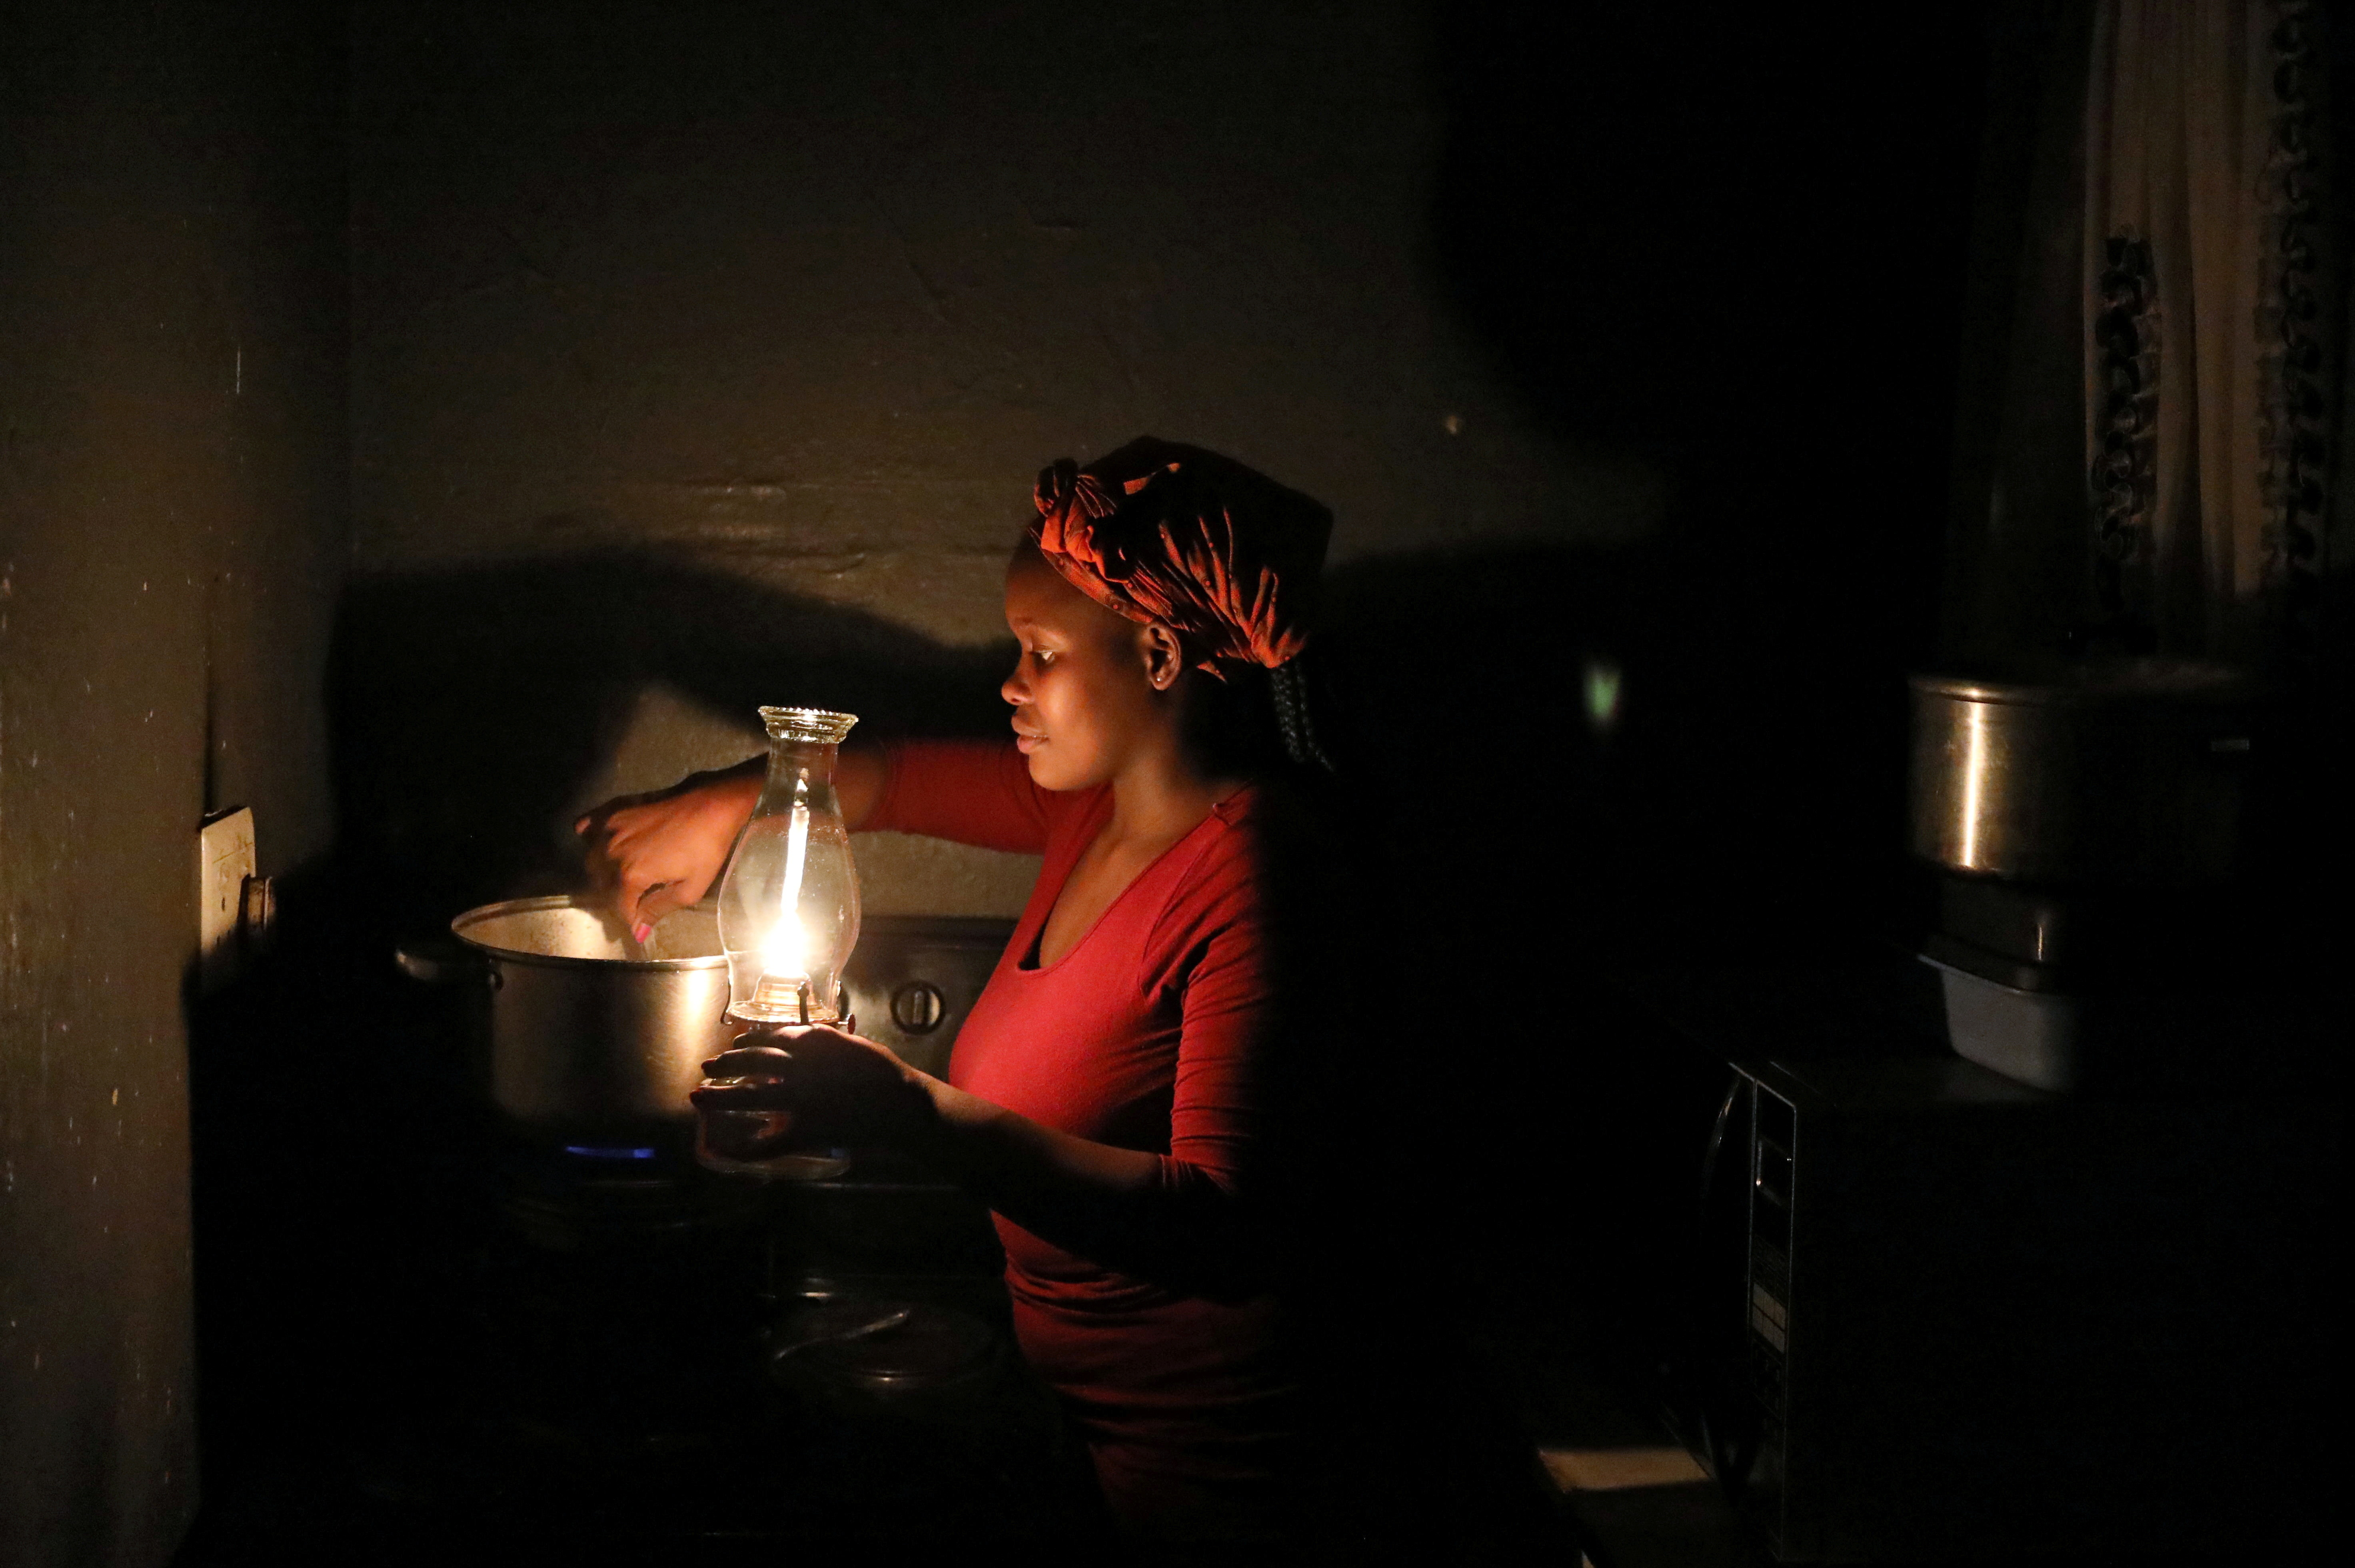 Luyanda Makhathini uses a parafin light while cooking during an electricity load-shedding blackout at her home in Soweto, South Africa, March 18, 2021. REUTERS/Siphiwe Sibeko